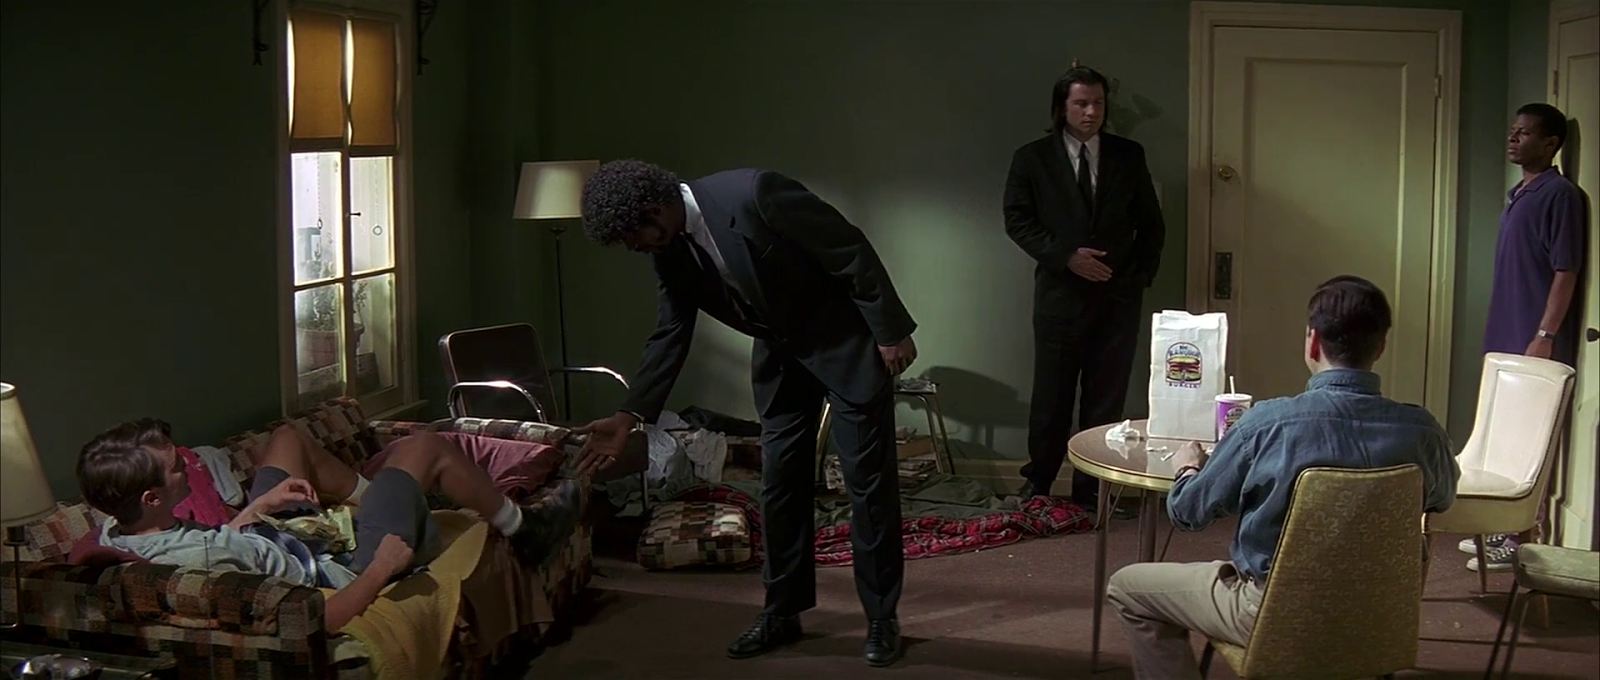 What makes the dialogue so great in quentin tarantino images